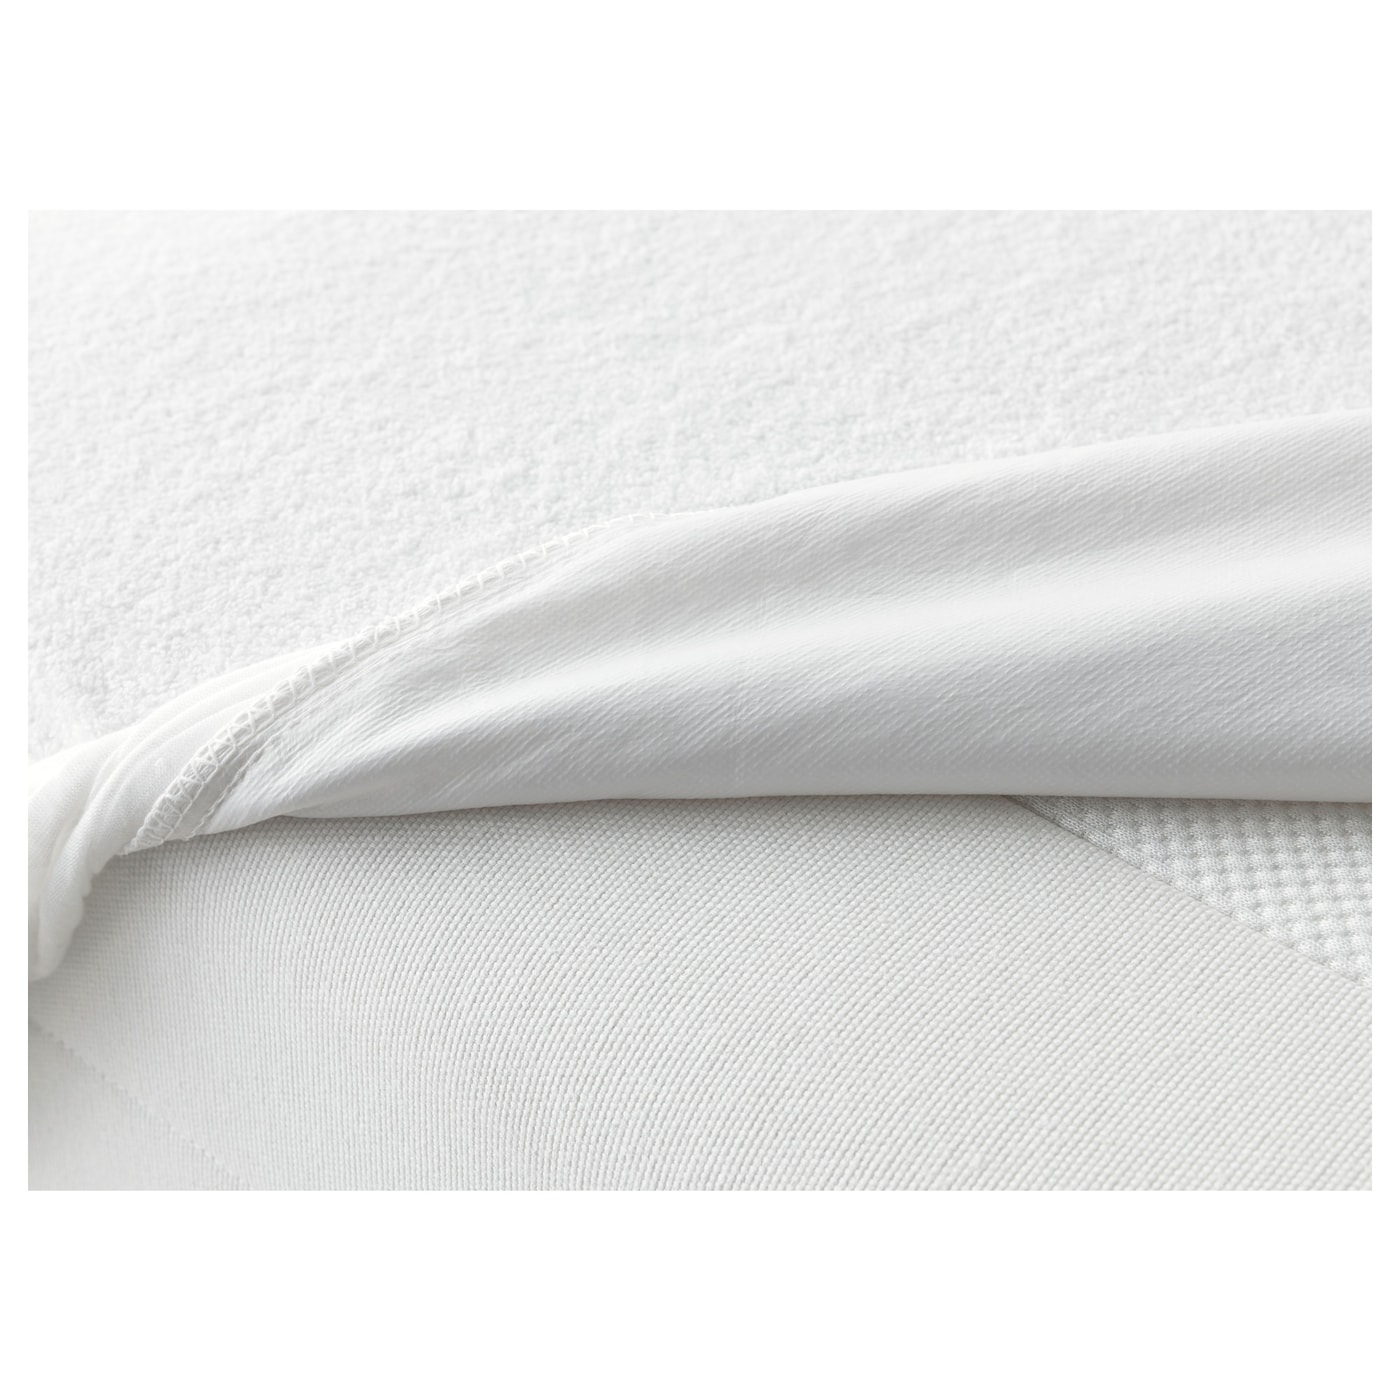 mattress to from crib king protector clevamama waterproof size tencel